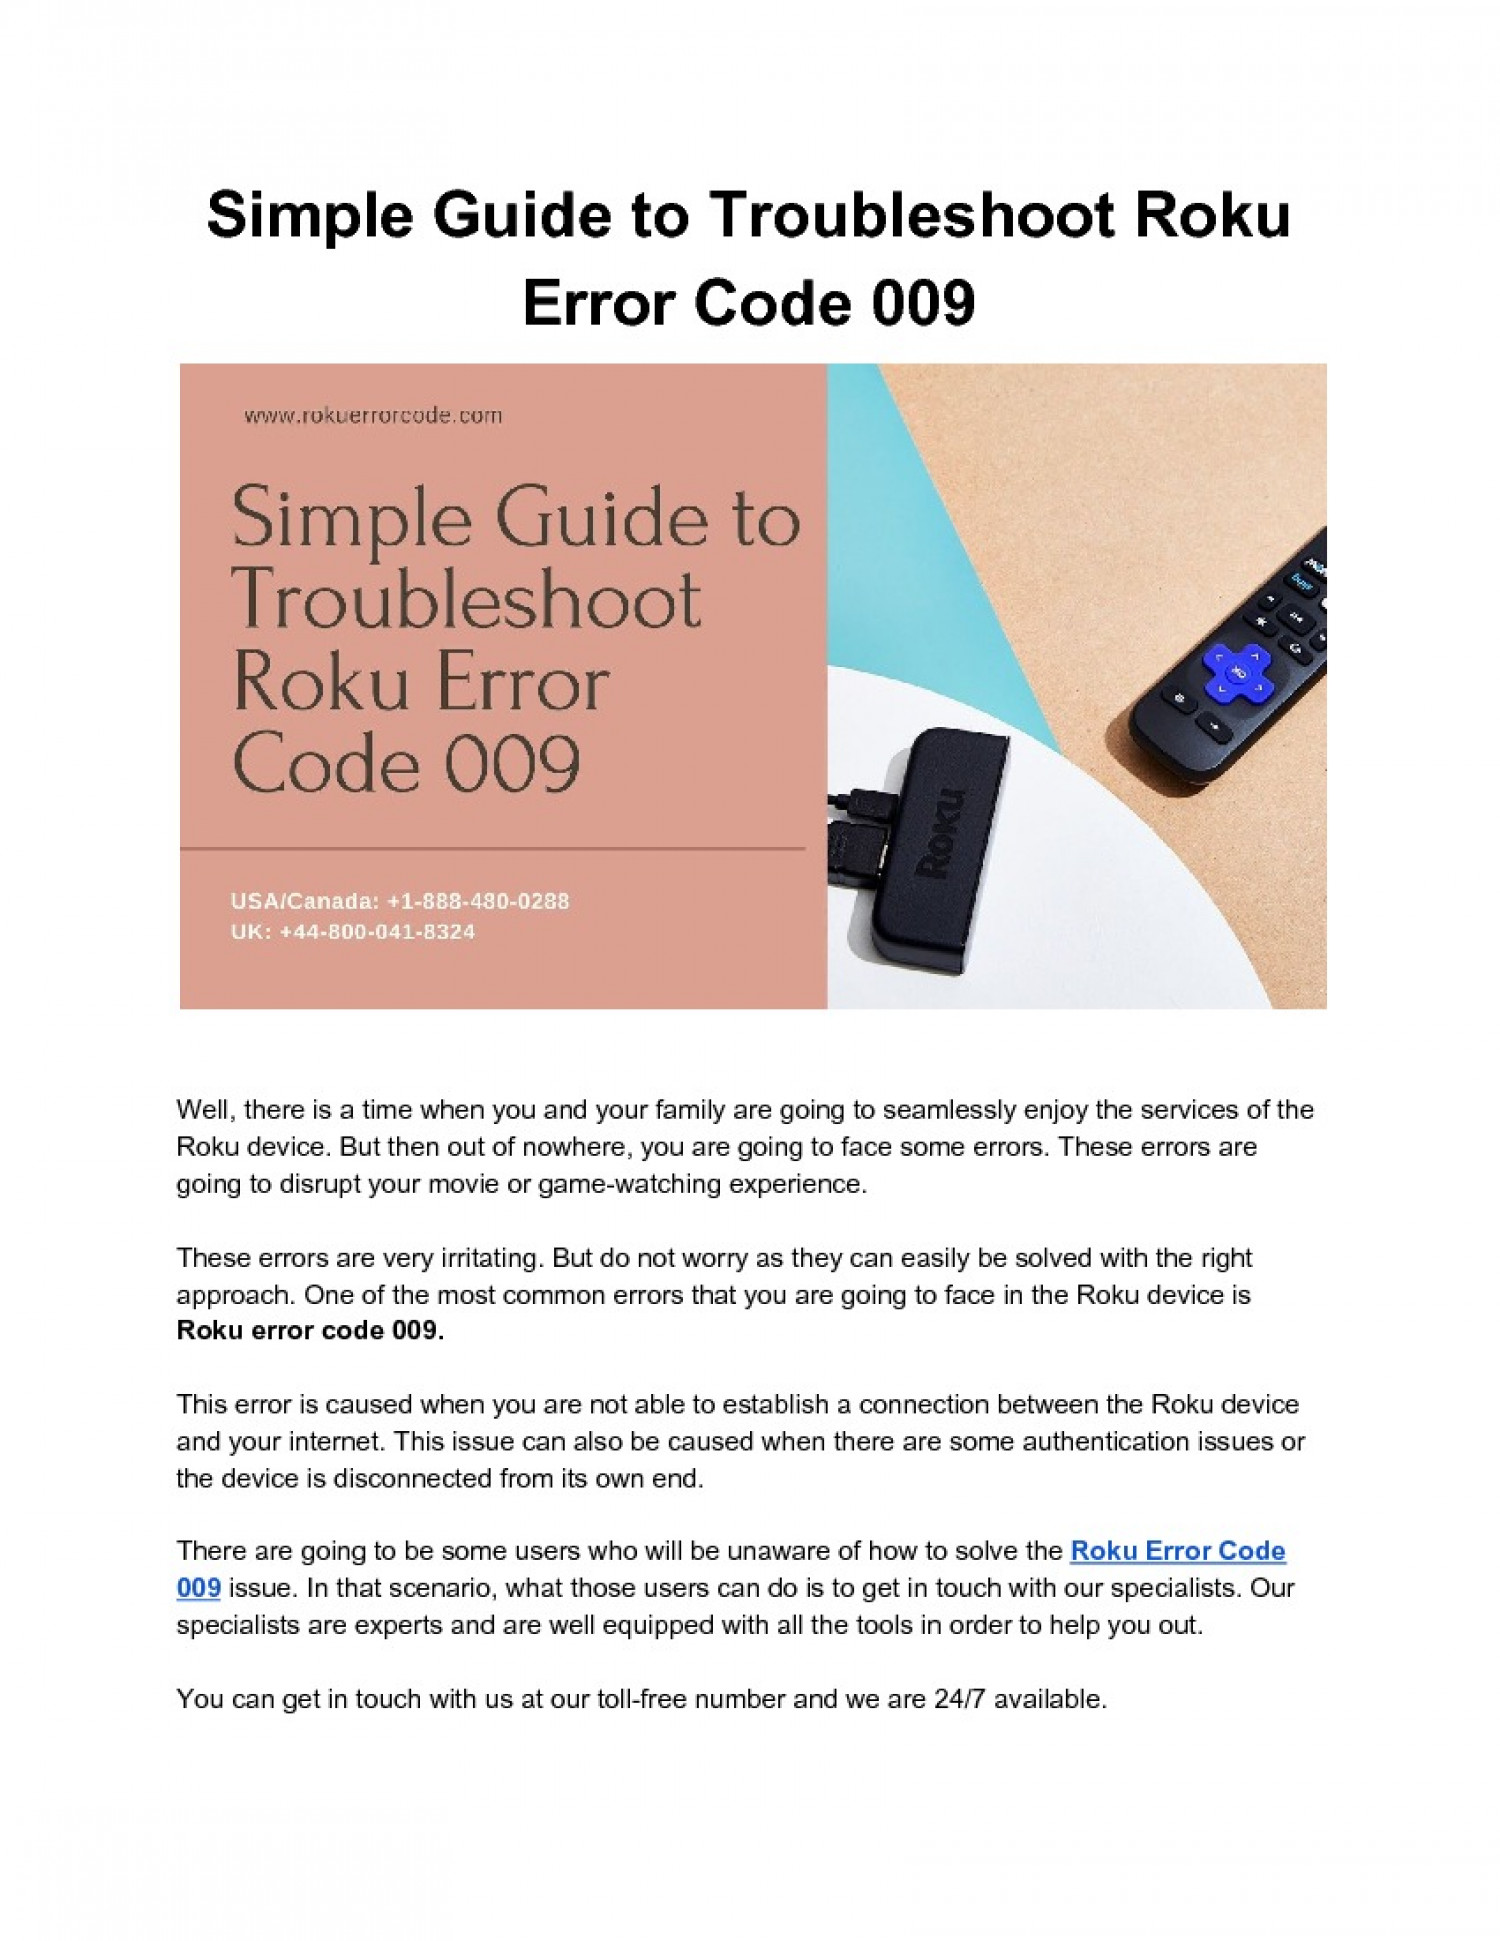 Guide to Troubleshoot Roku Error Code 009 Infographic